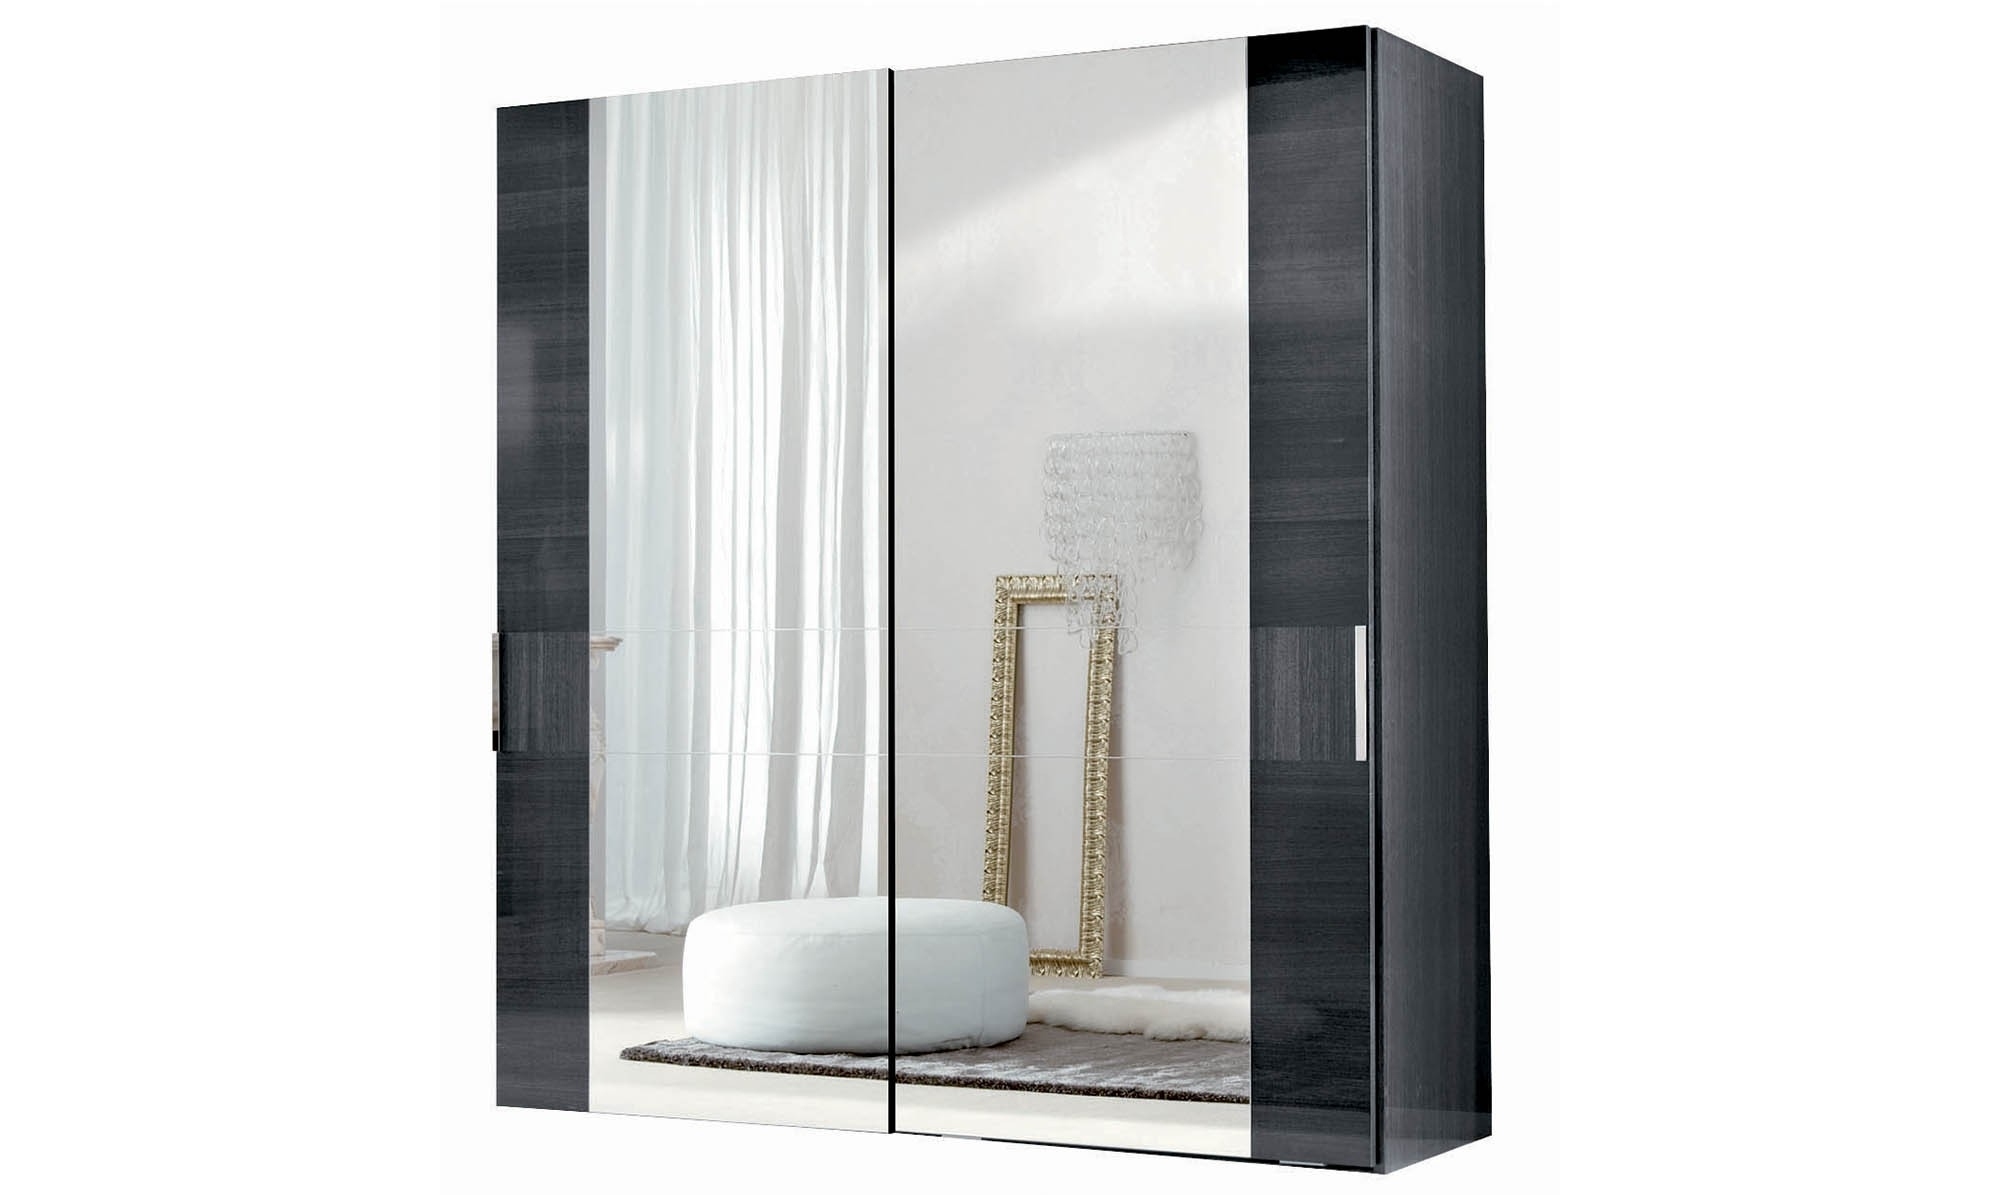 Preferred Antibes – 2 Sliding Mirror Door Wardrobe – All Bedroom Ranges Regarding 2 Sliding Door Wardrobes (View 11 of 15)